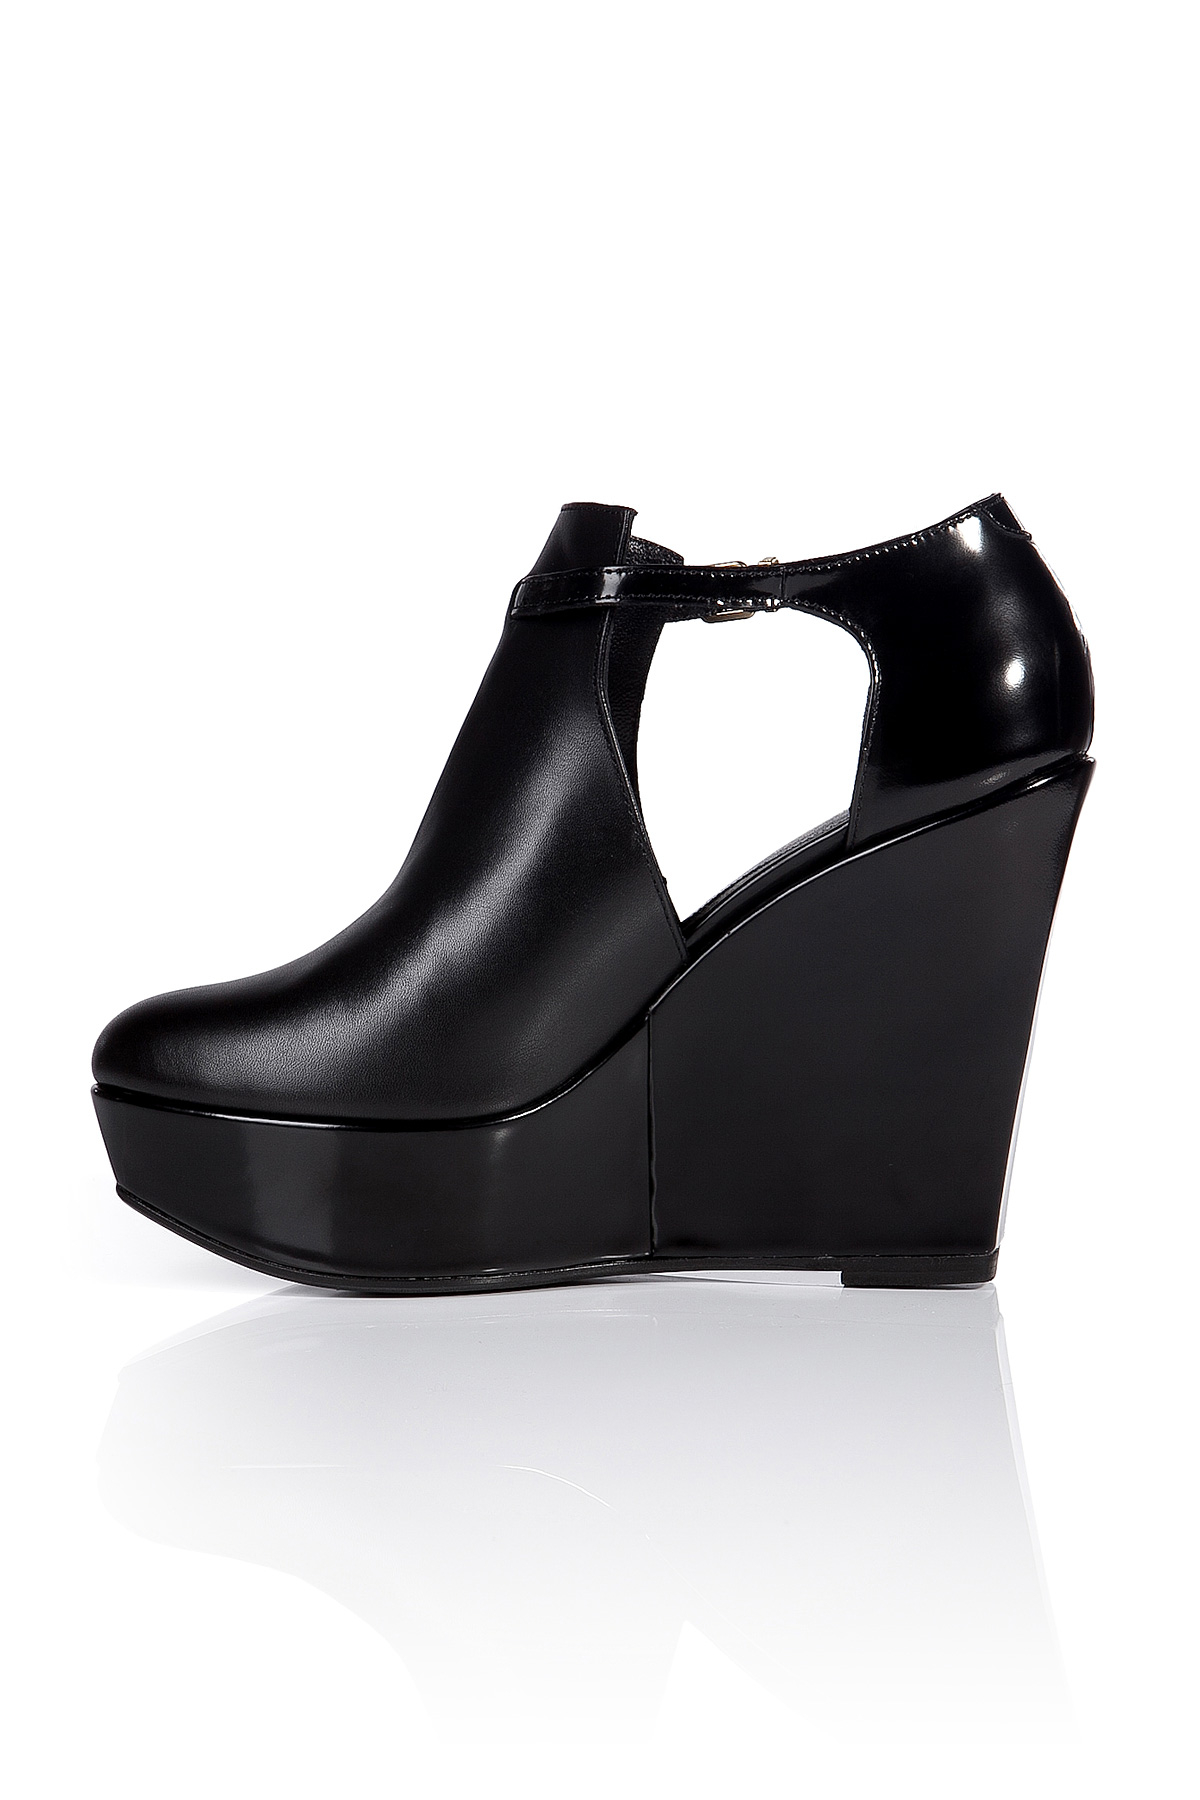 13fd136bf8c Robert Clergerie Leather Filona Platform Ankle Boots in Black - Lyst